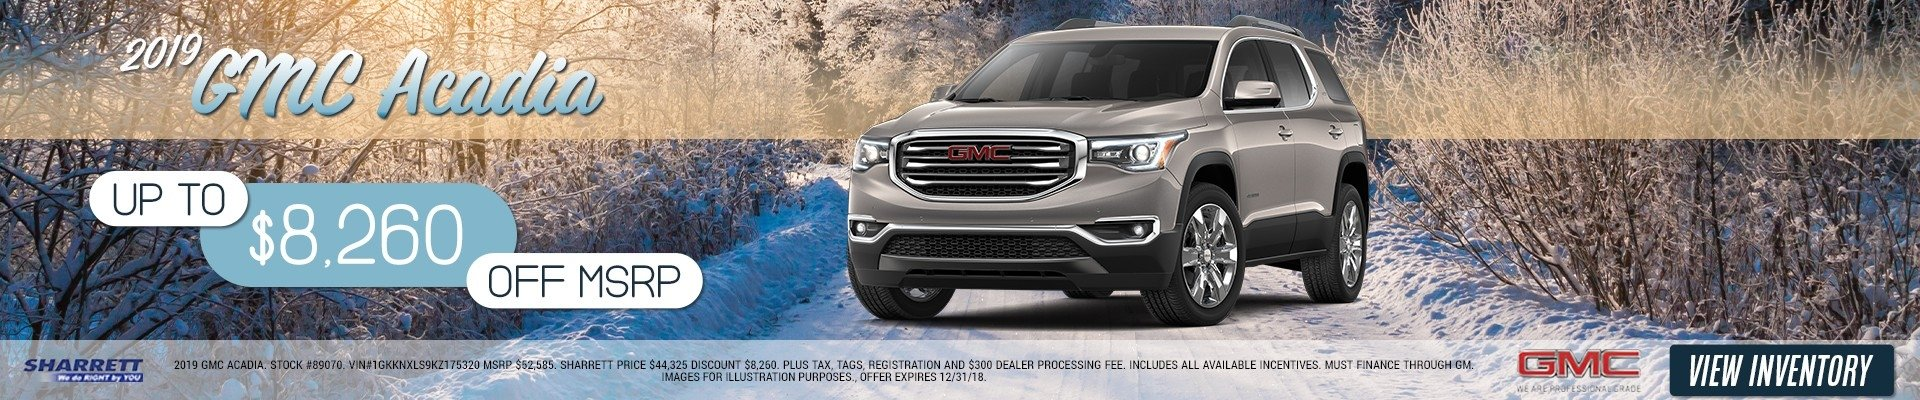 Up to $8,260 off MSRP on a 2019 GMC Acadia